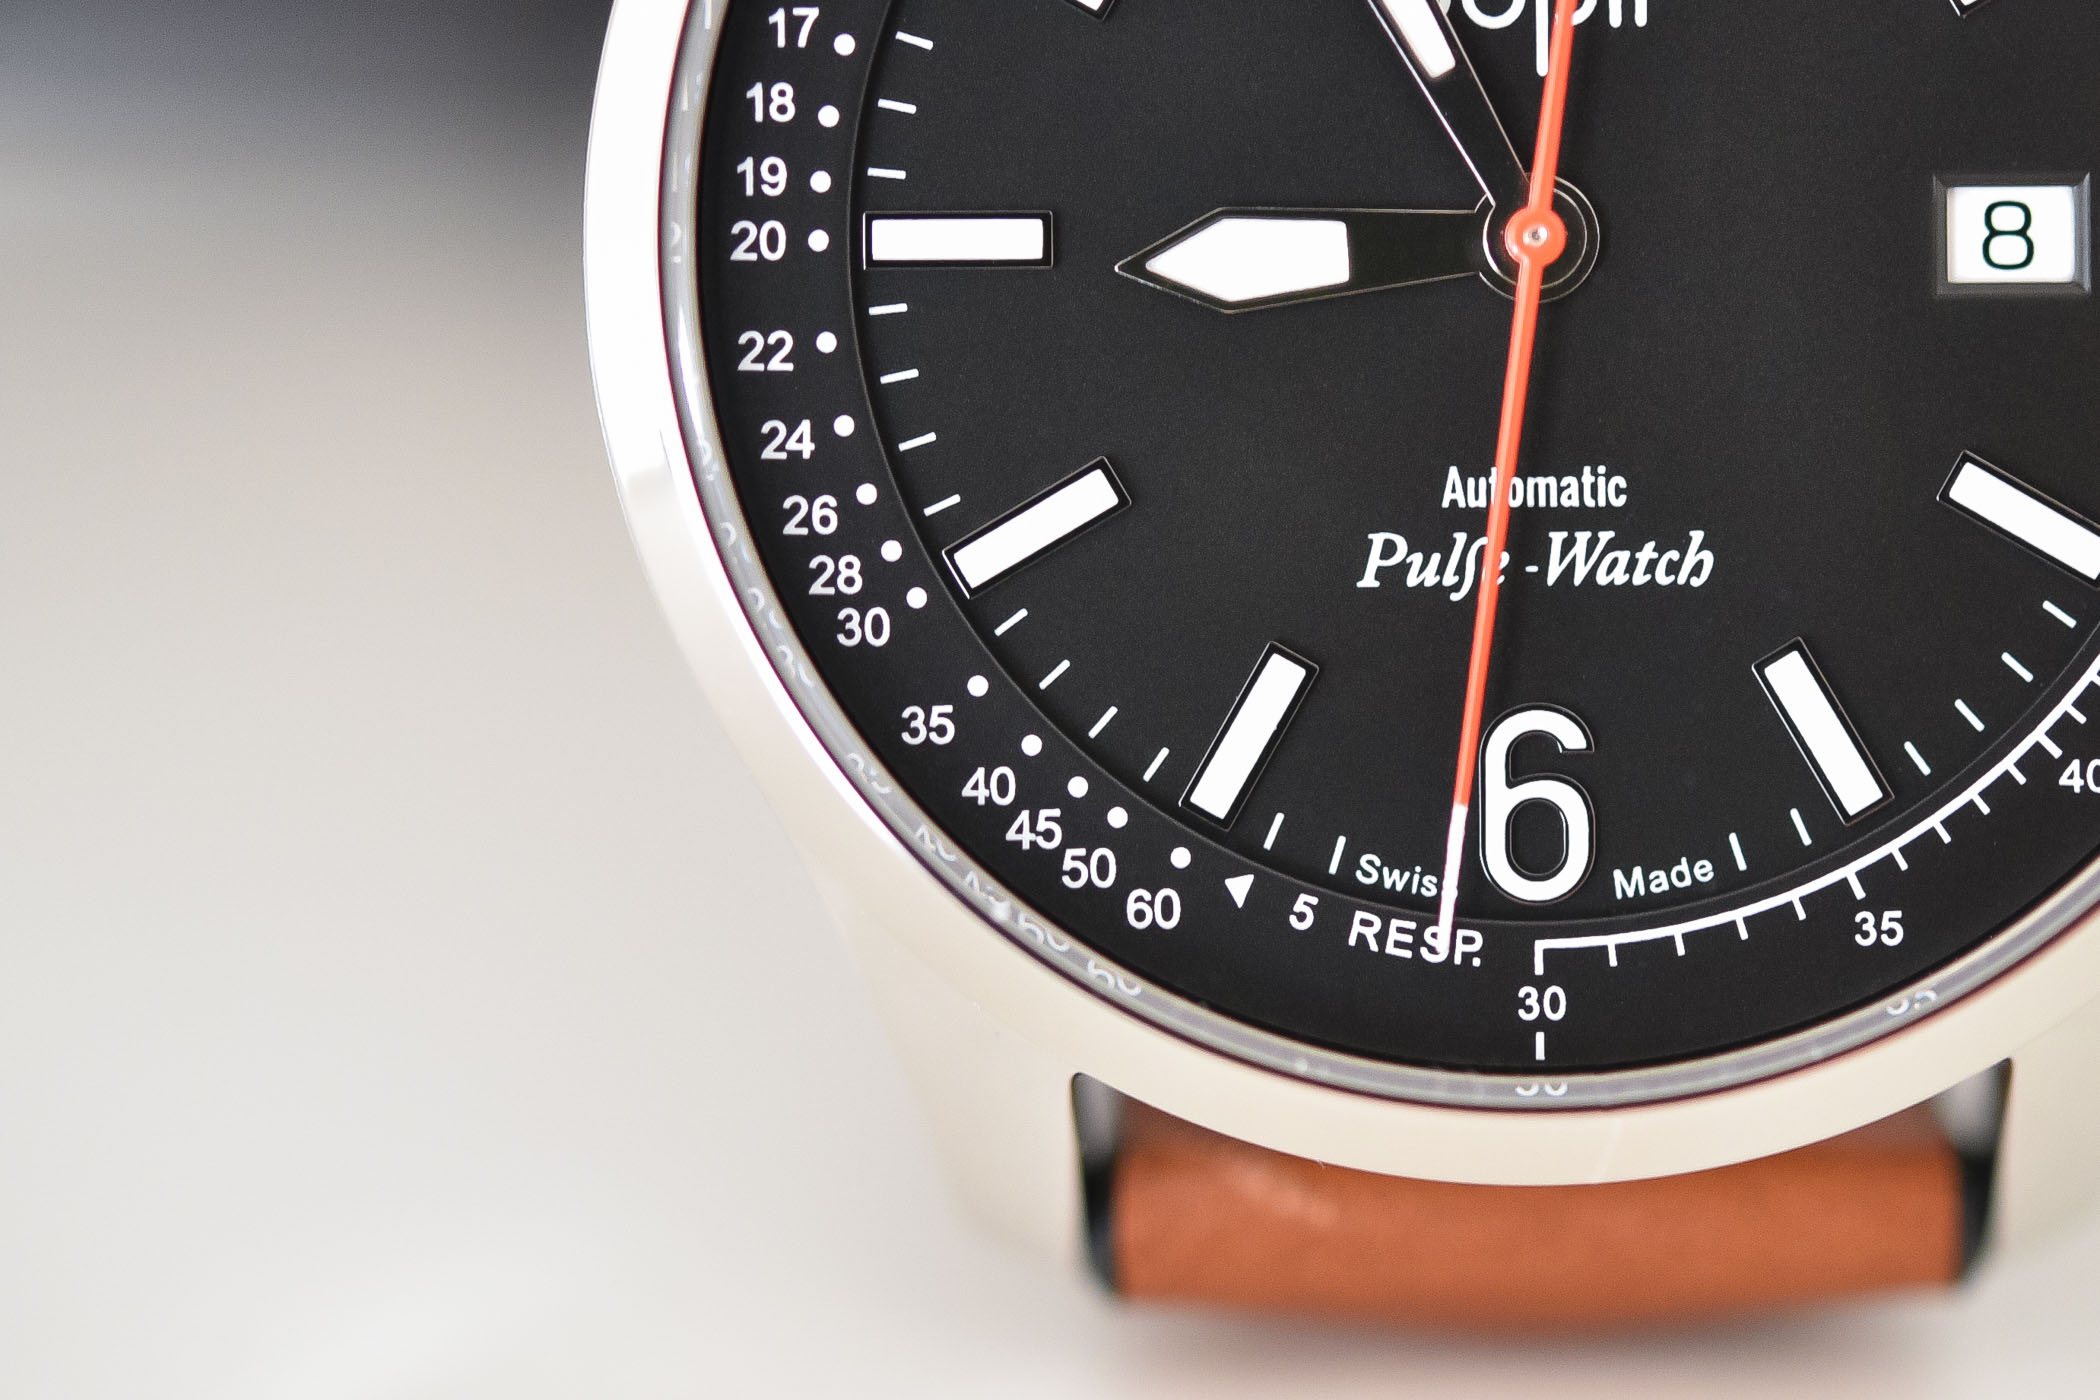 Doplr Pulse-Watch - doctor's watch pulsation dial